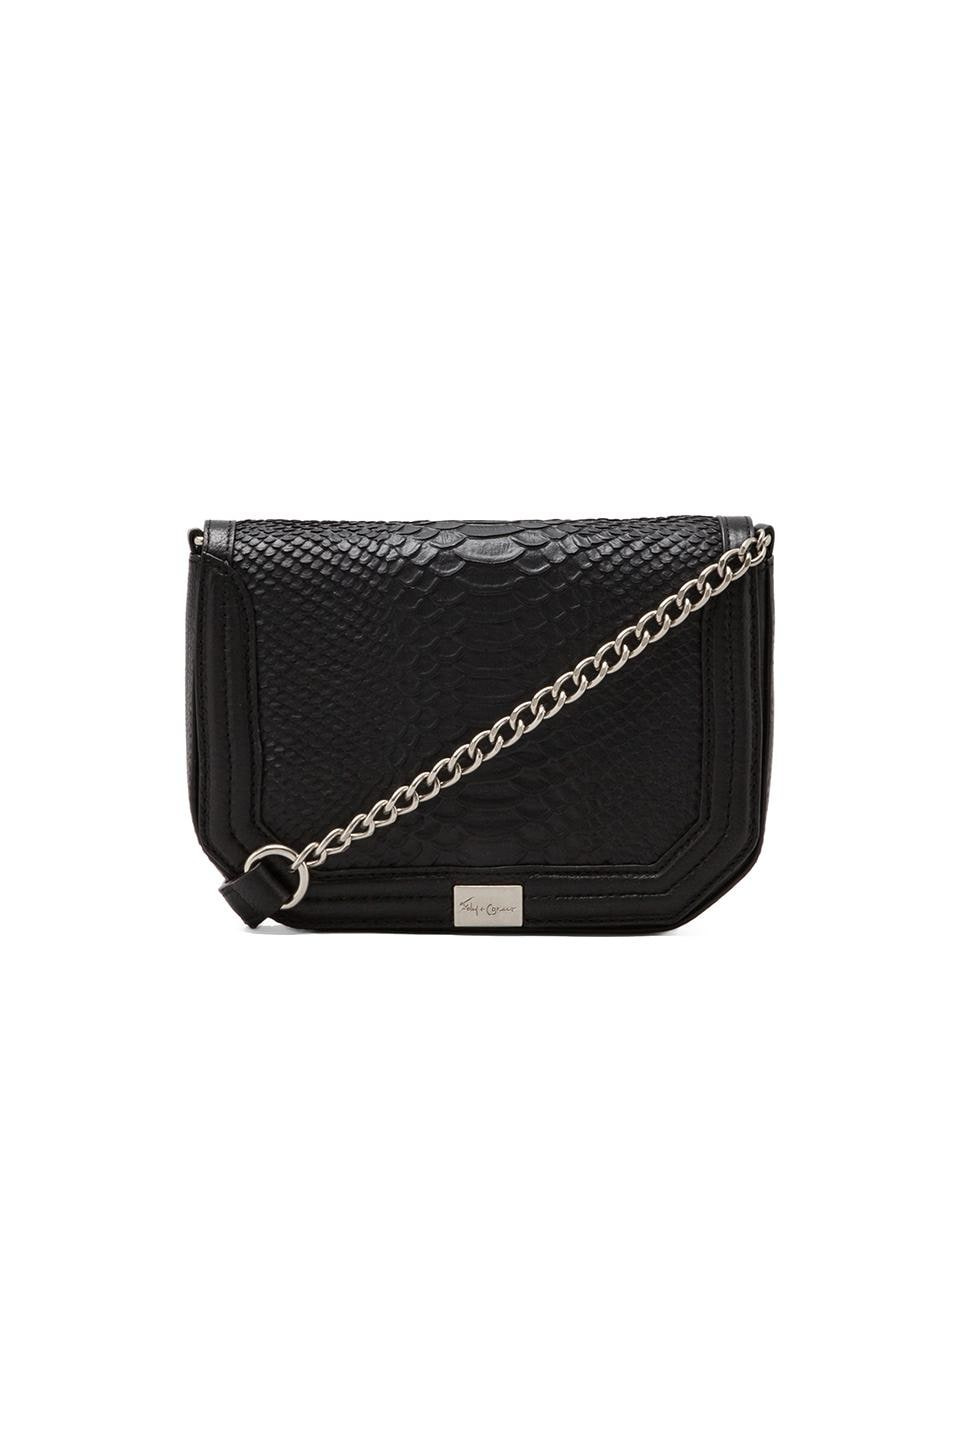 Foley + Corinna Plated Mini Crossbody Bag in Raven